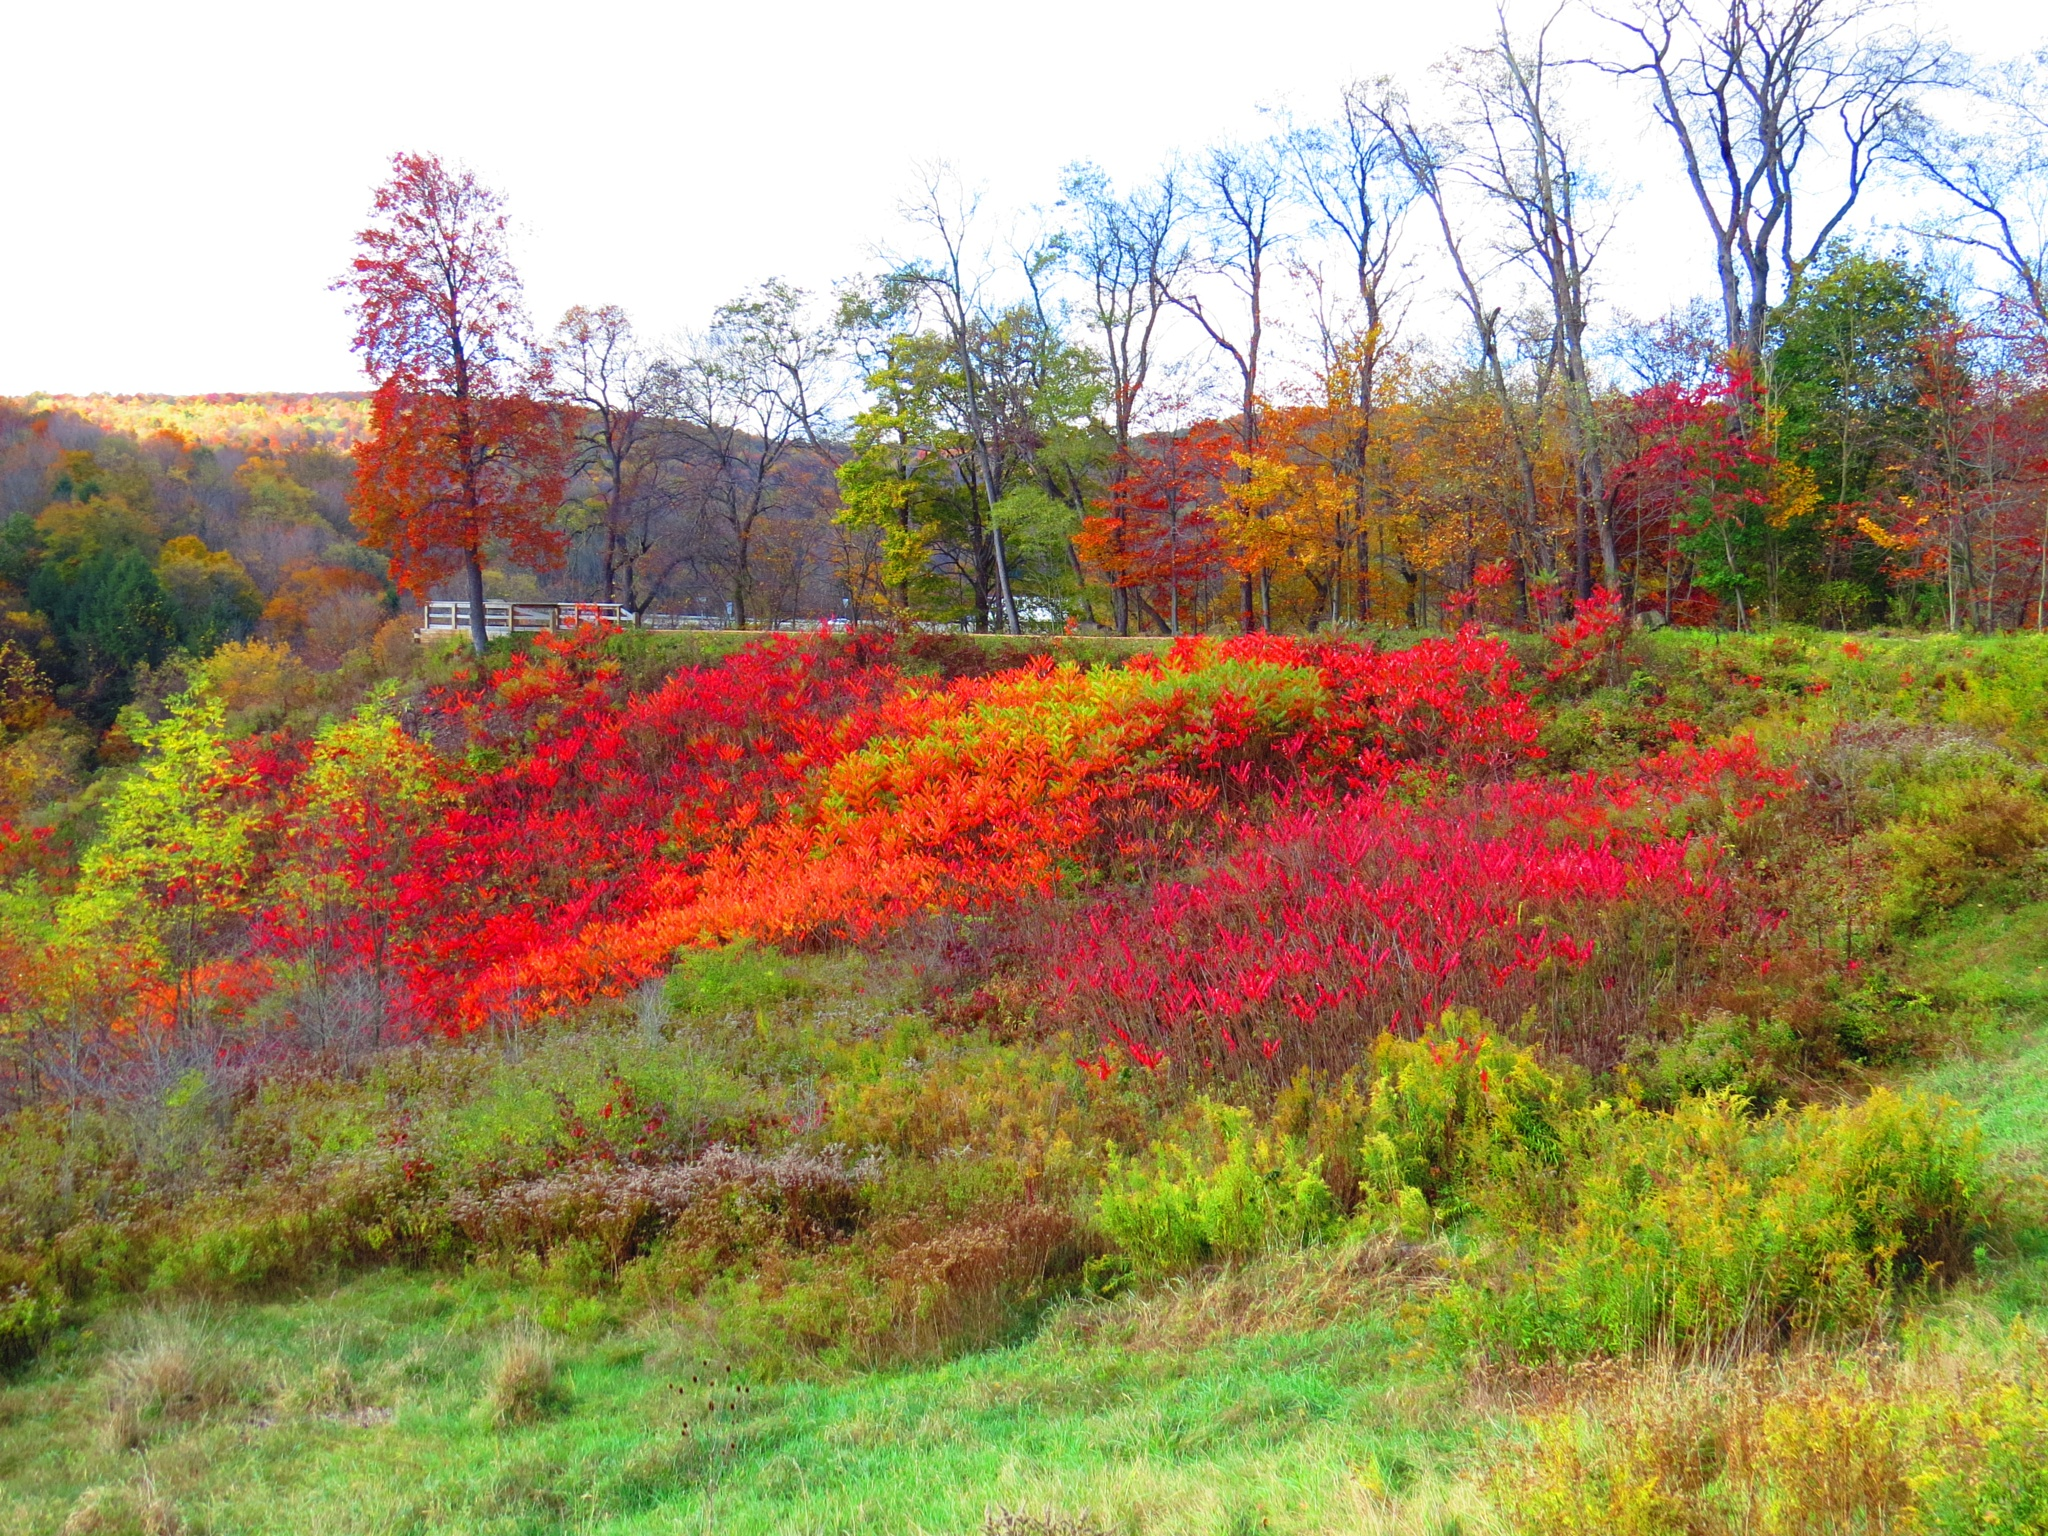 Sumac shrubs all red in color. by Becky Krug